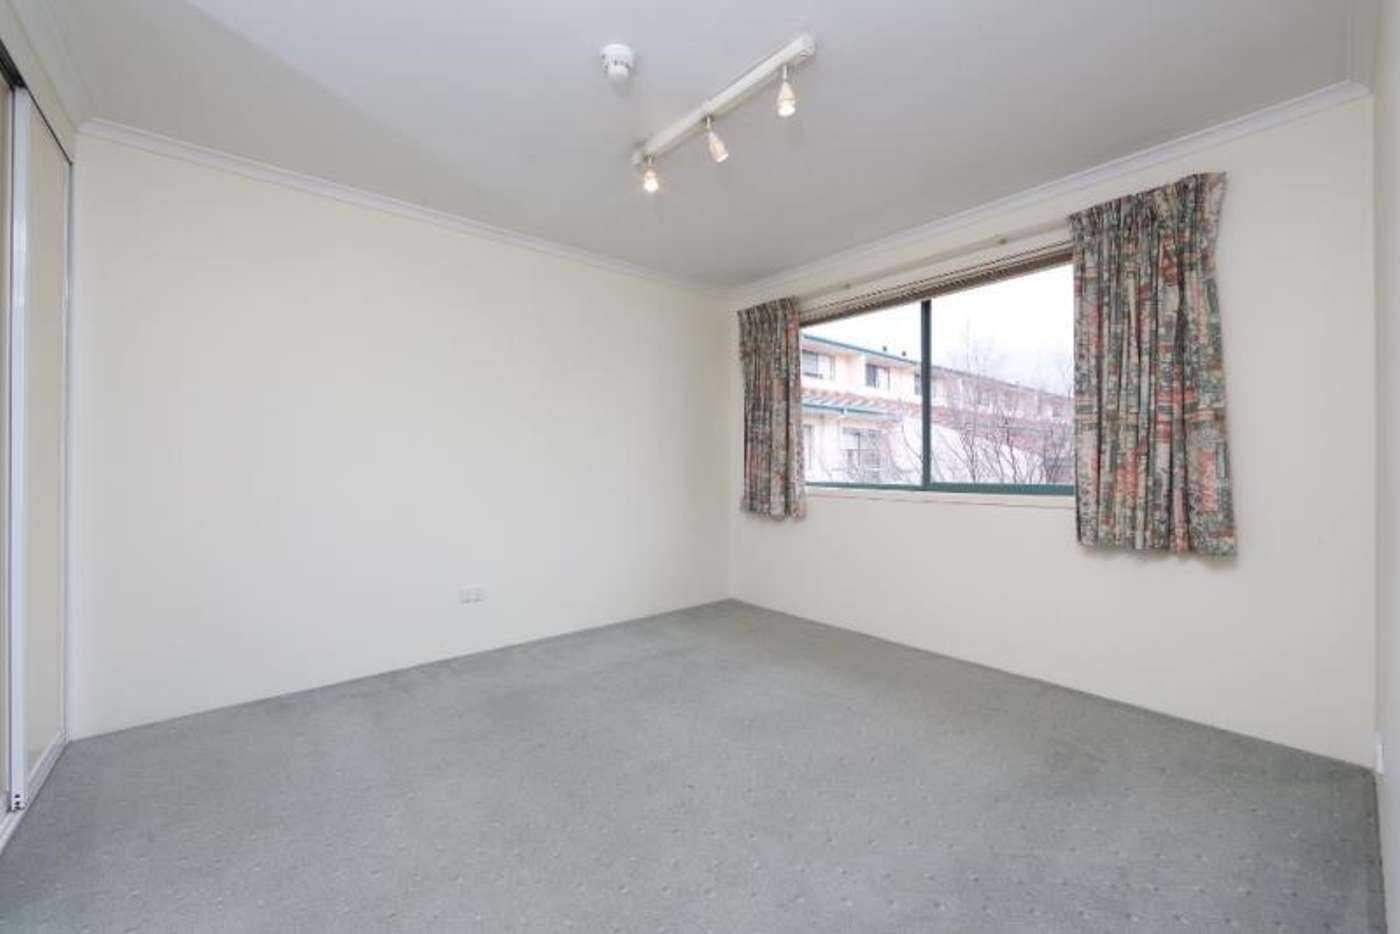 Sixth view of Homely apartment listing, 316/15 Jardine Street, Kingston ACT 2604